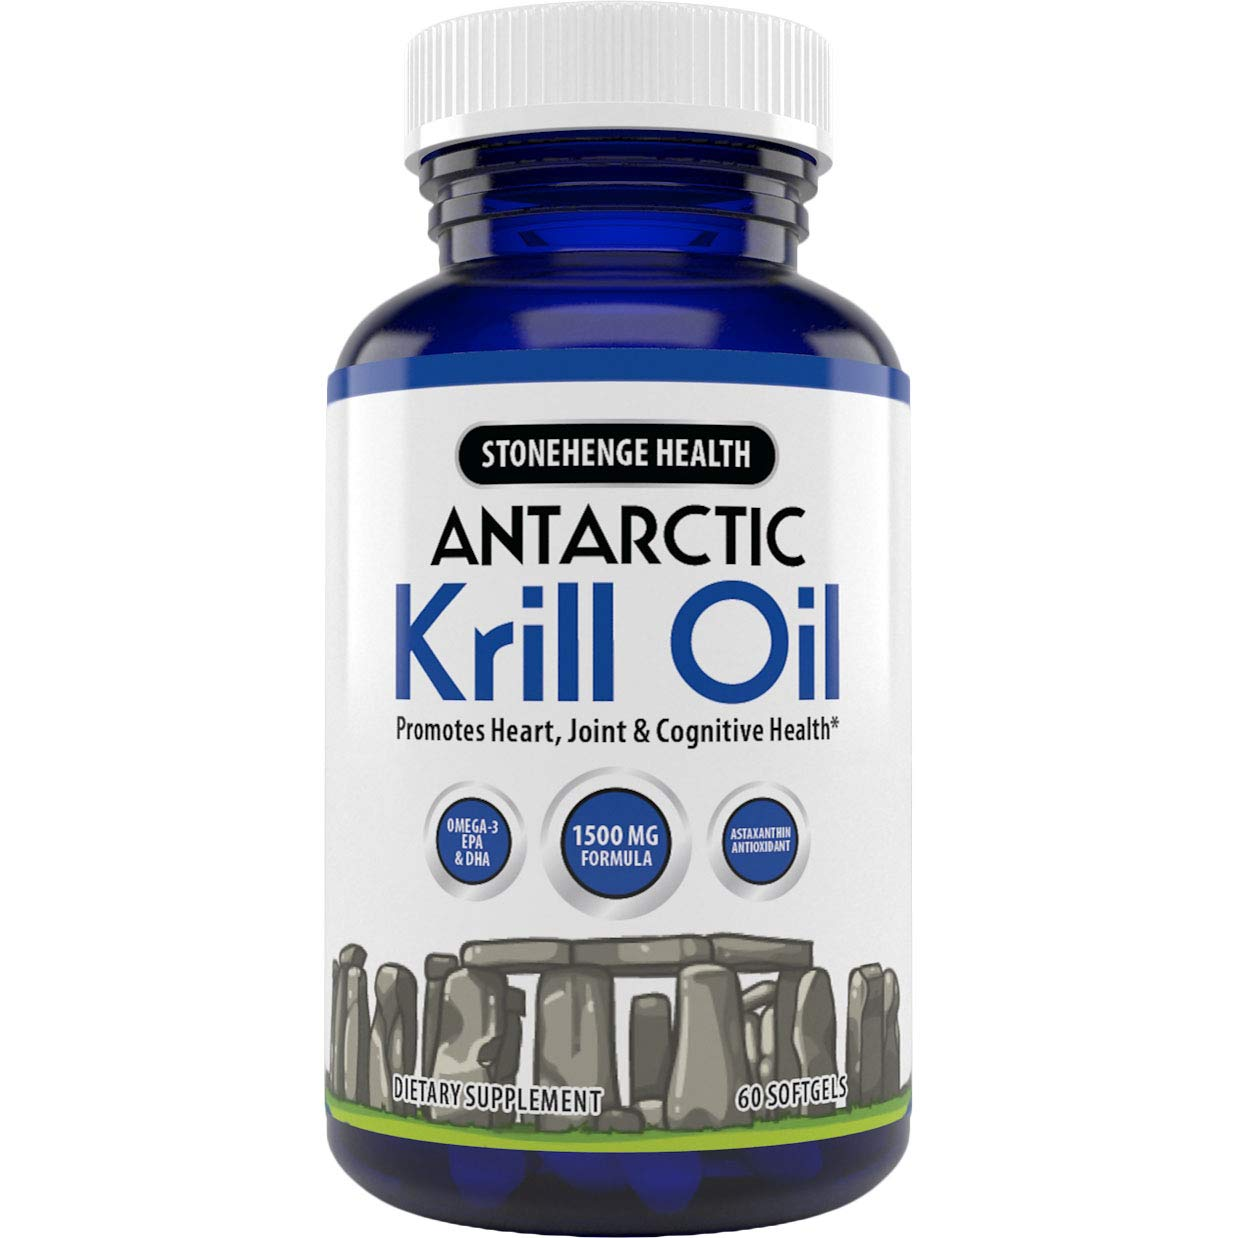 Stonehenge Health Antarctic Krill Oil - Manufactured in USA - Supports Heart, Joint & Brain Health - Maximum Strength Omega-3 EPA - Lemon-Scented - Easy to Swallow - 60 Softgels 30 Day Supply (1) by Stonehenge Health